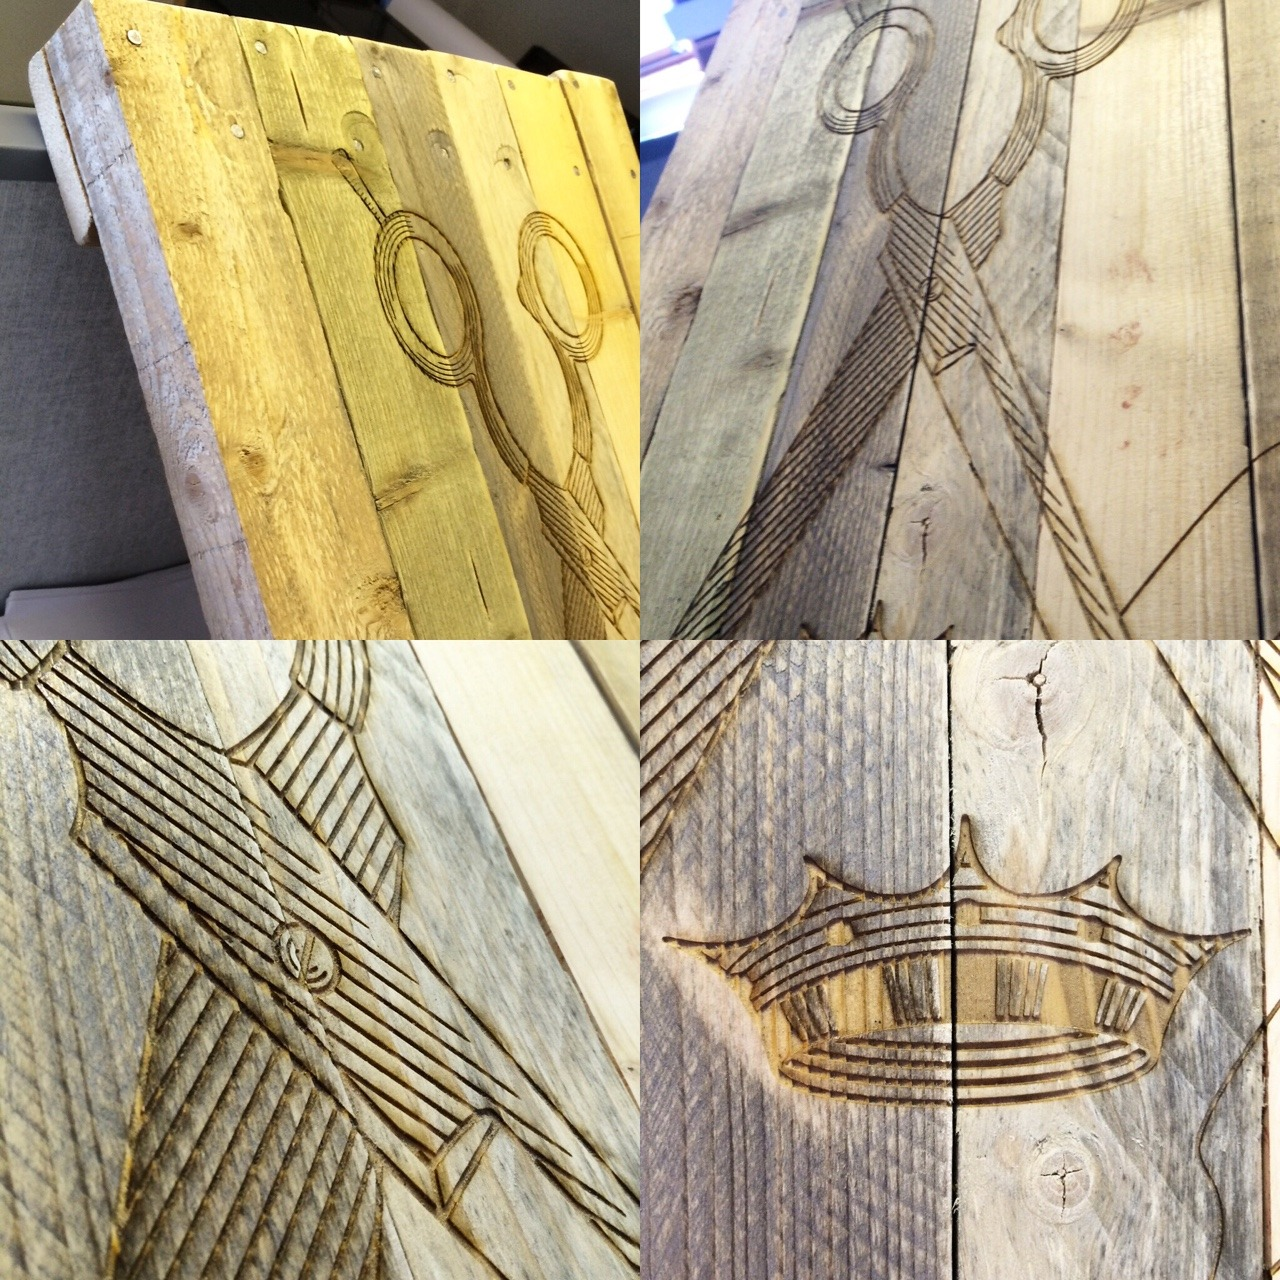 design etched onto base of reclaimed wood - salon king. Uppsala sweden.